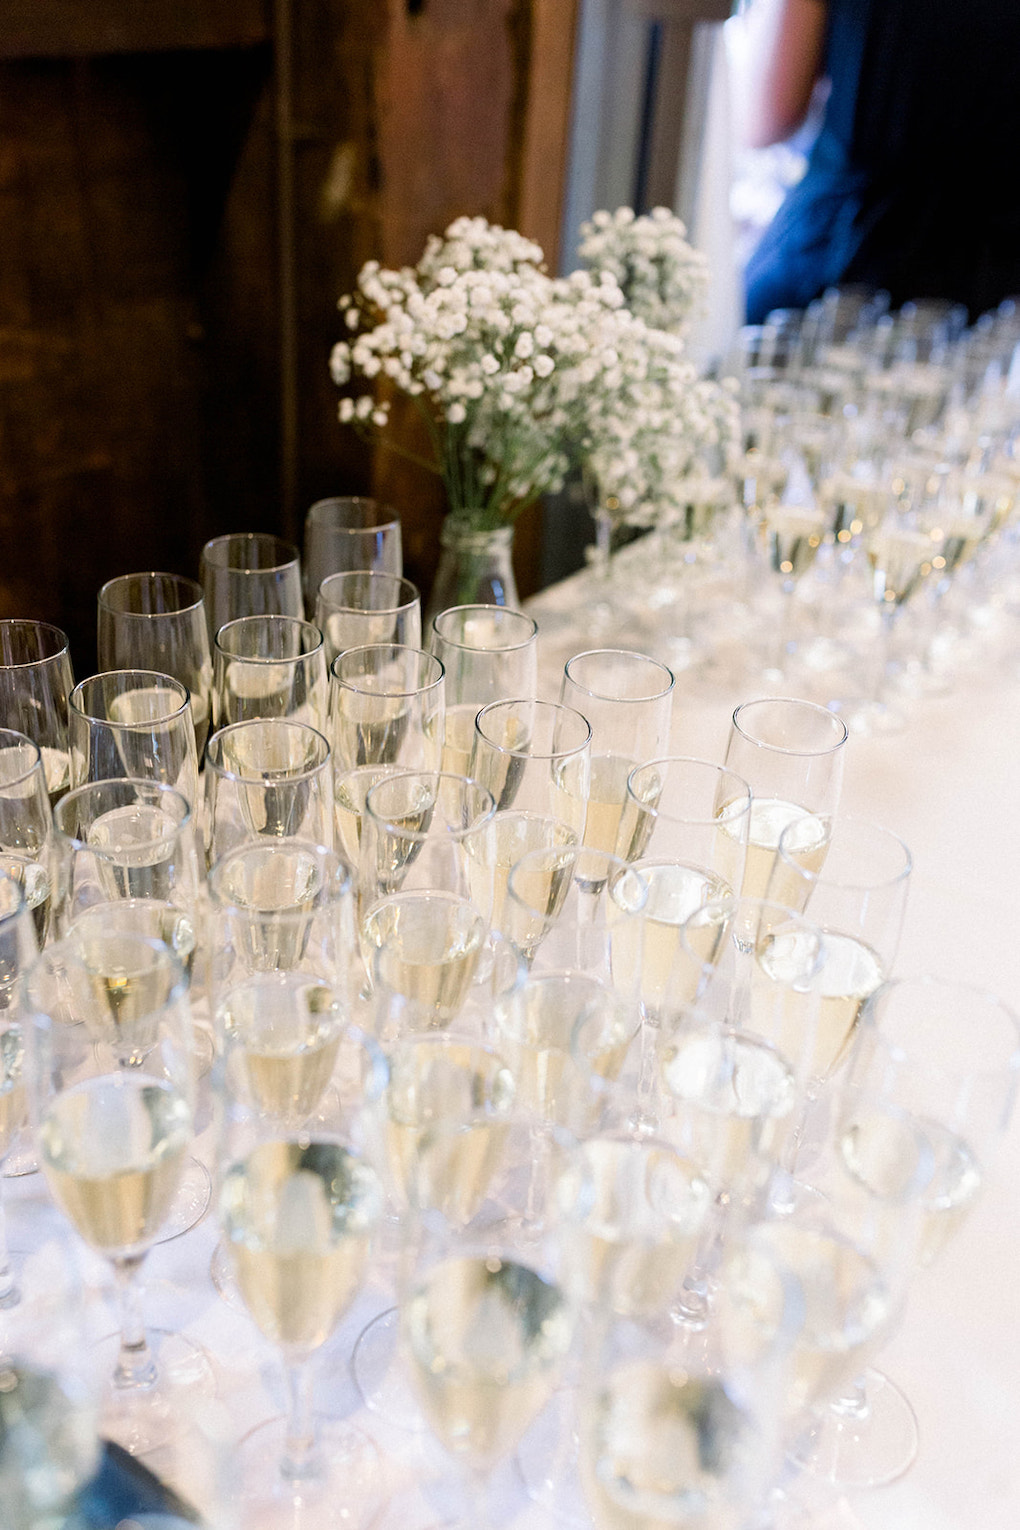 Champagne toast displays: Pittsburgh Botanic Garden wedding planned by Exhale Events. See more wedding inspiration at exhale-events.com!